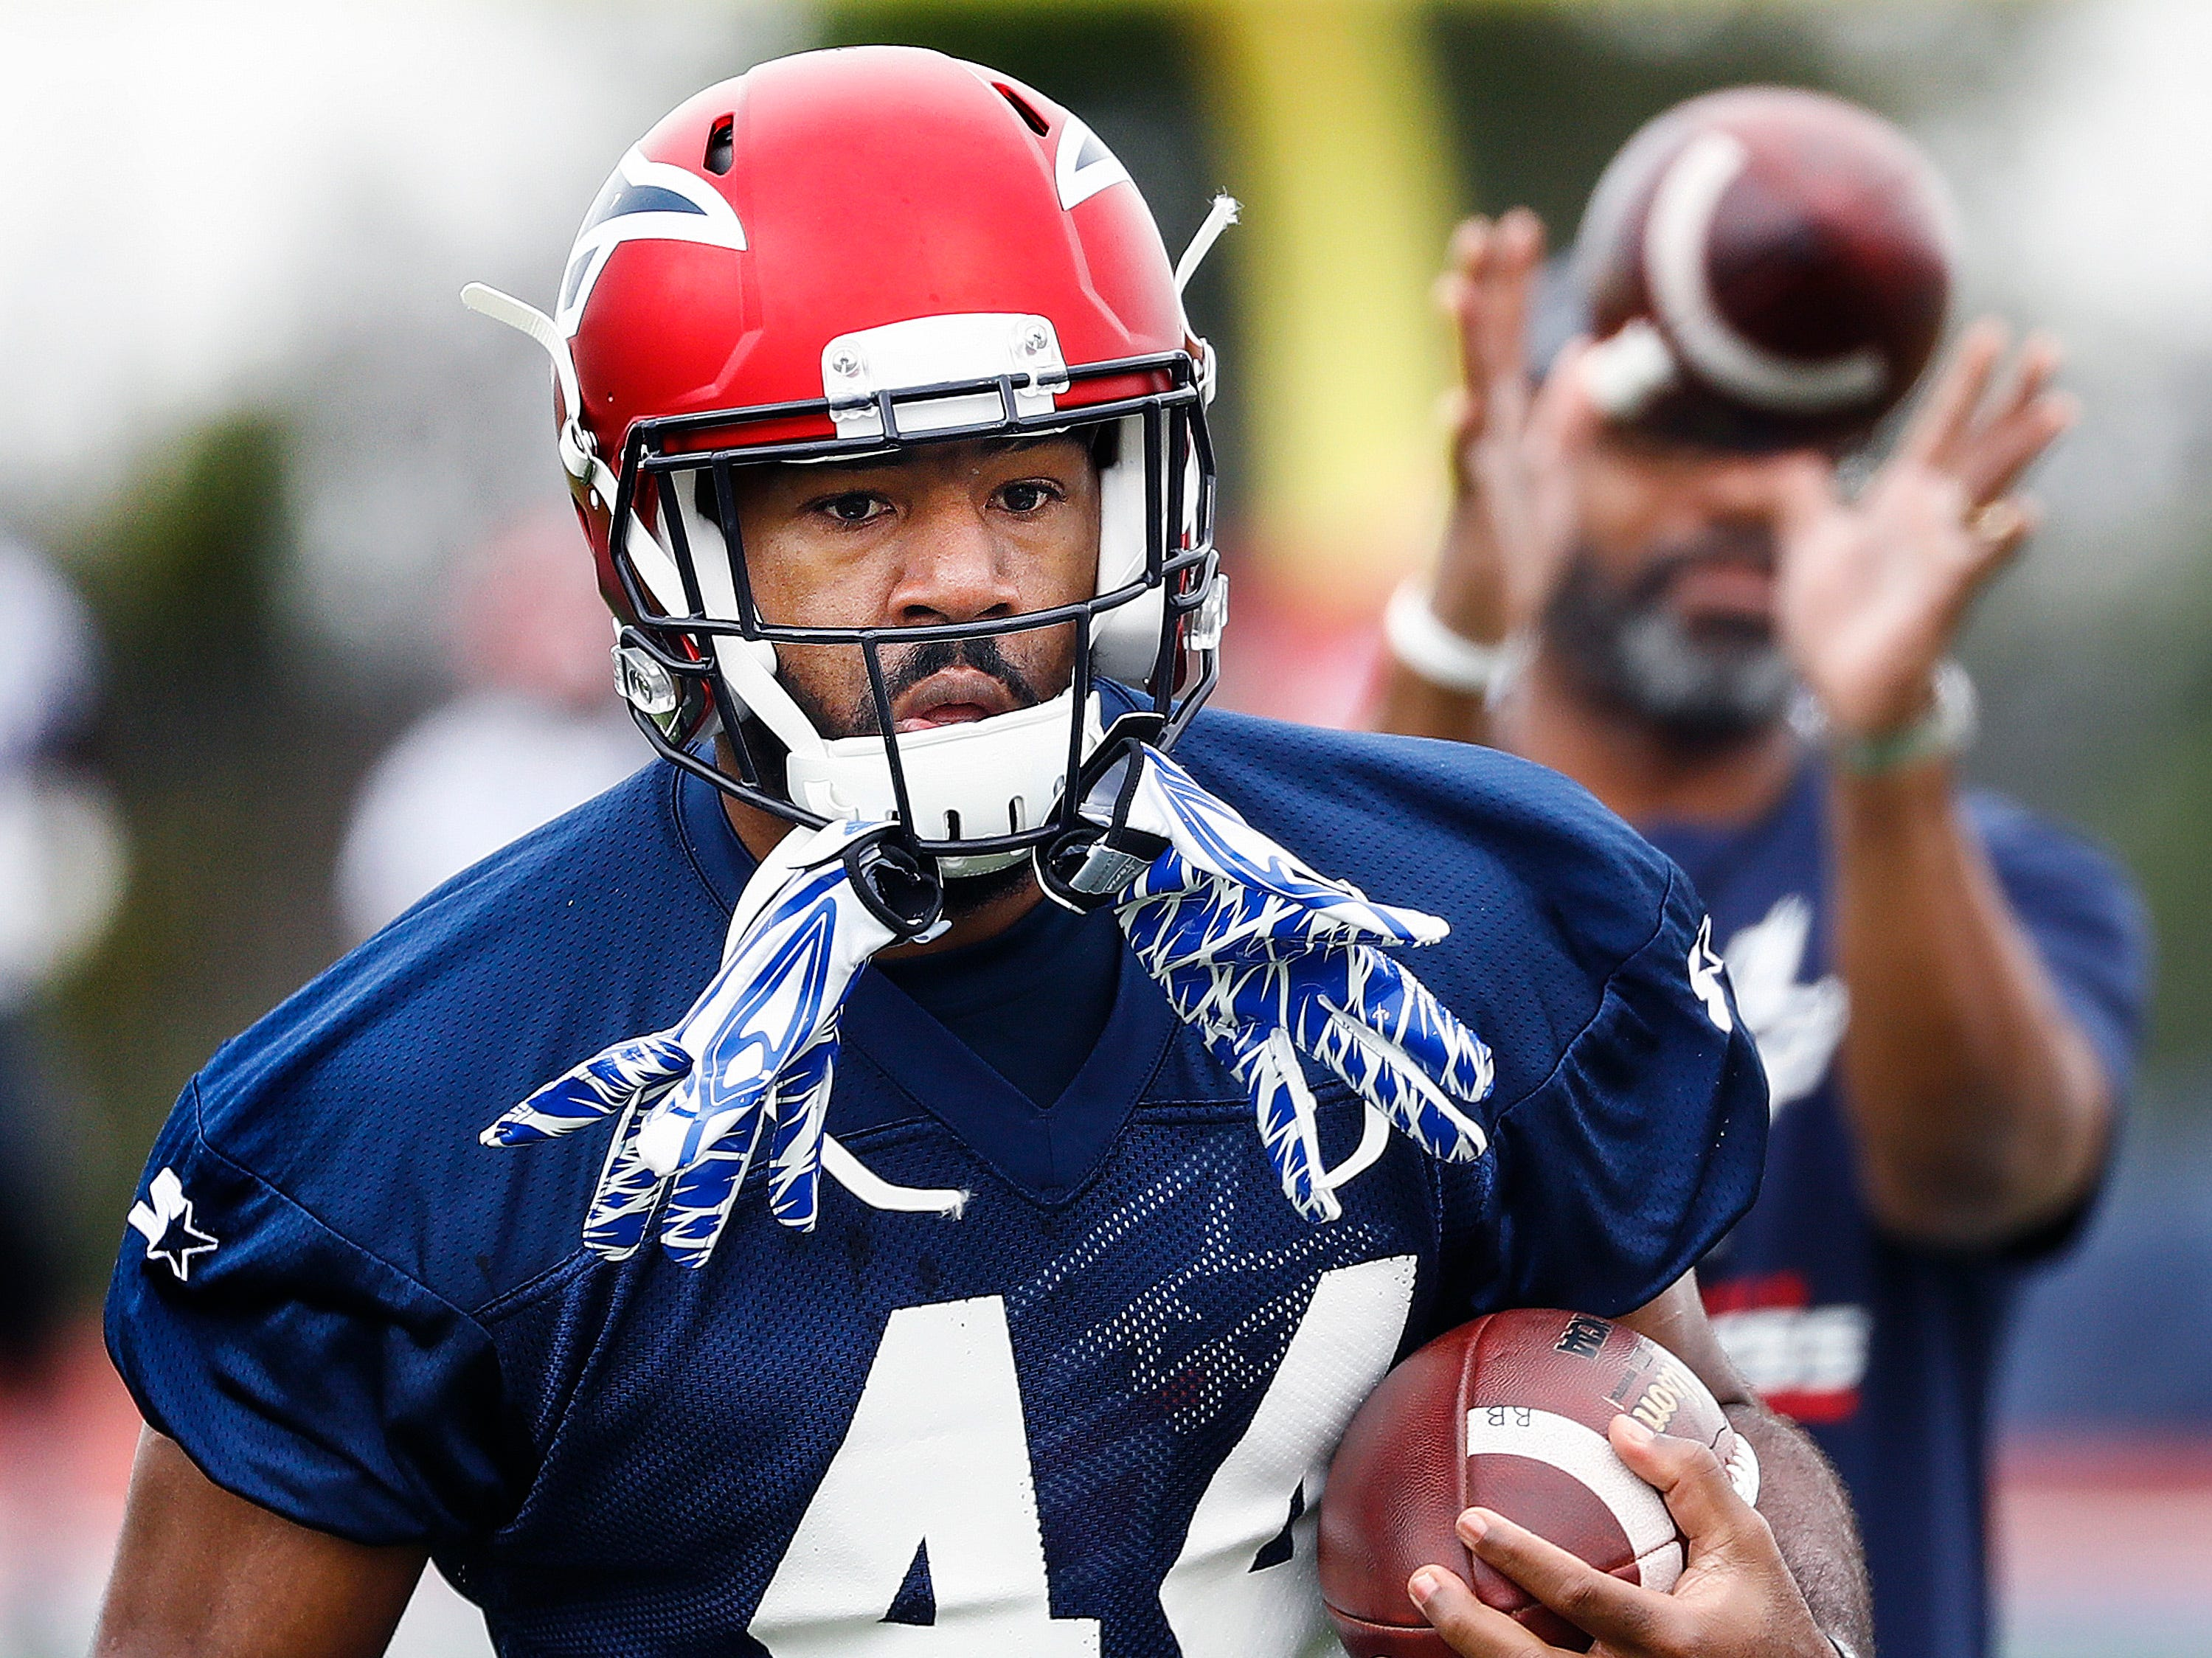 Memphis Express running back Kenny Hilliard during training camp in San Antonio, Texas.